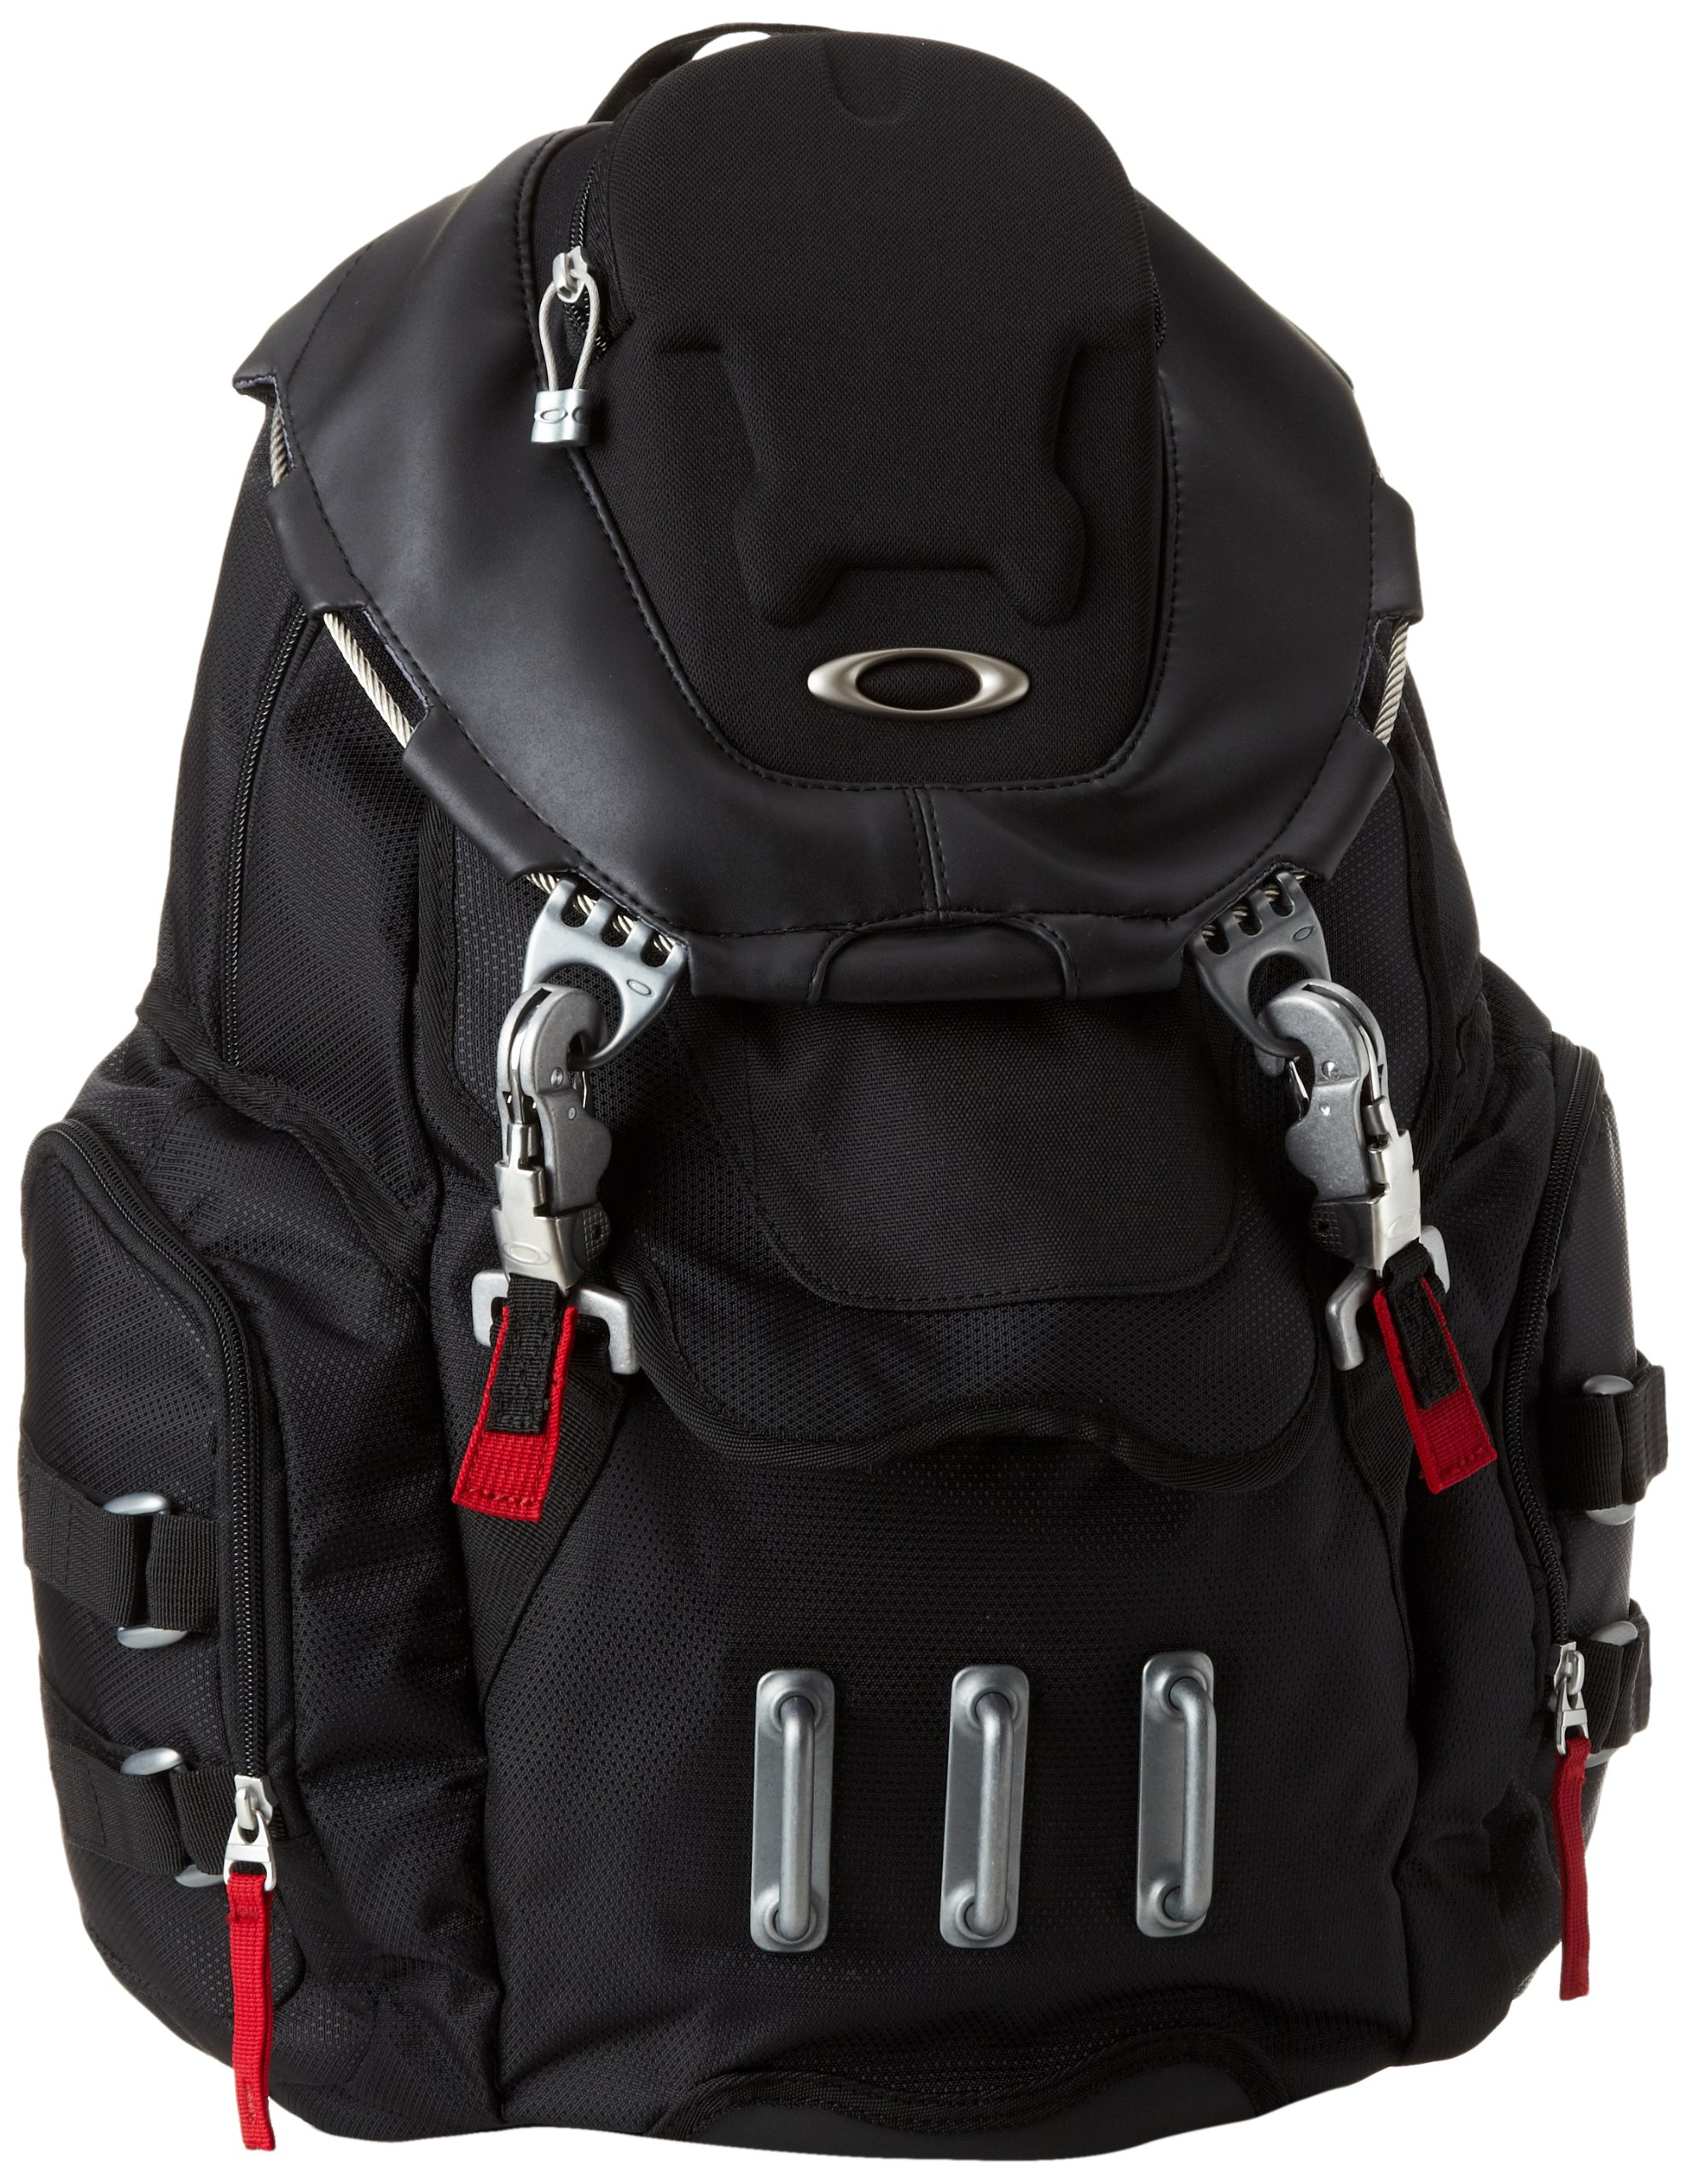 designer kitchen sink backpack oakley designer kitchen sink pack l black www tapdance org 460